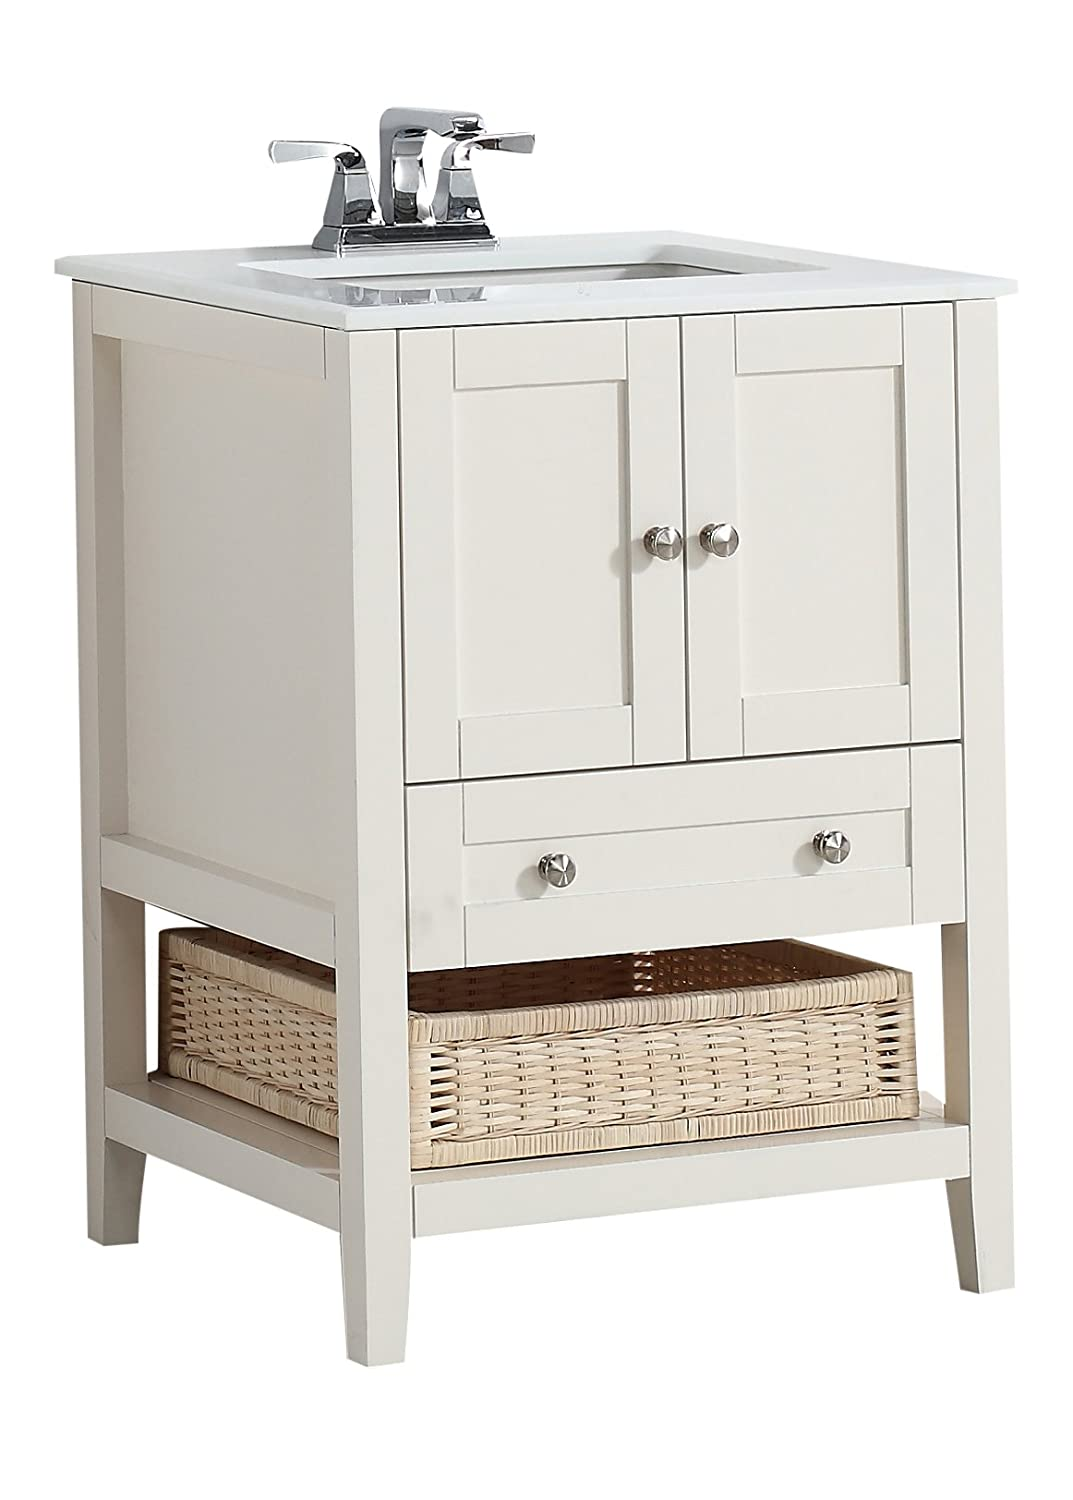 Simpli Home 4AXCVCCW-24 Cape Cod 24 inch Contemporary Bath Vanity in Soft White with White Engineered Quartz Marble Top